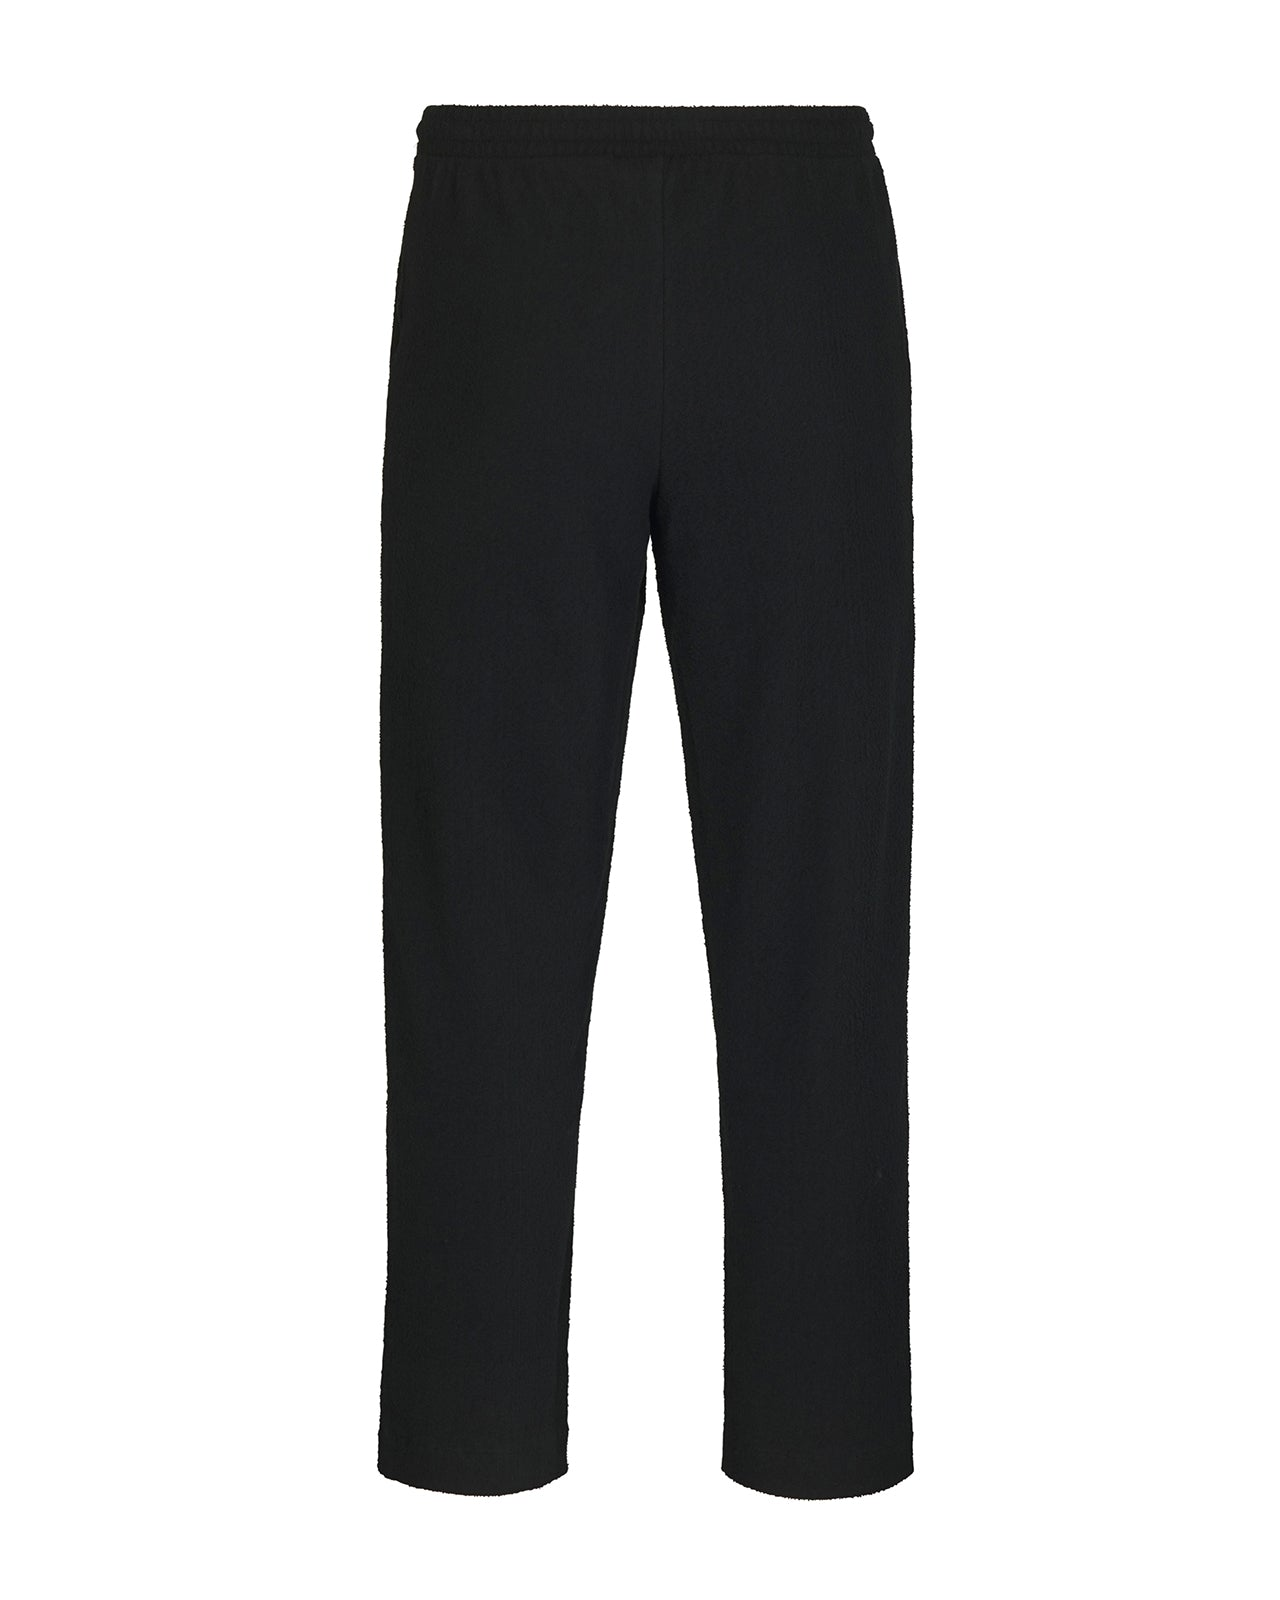 Textured Pants – Black